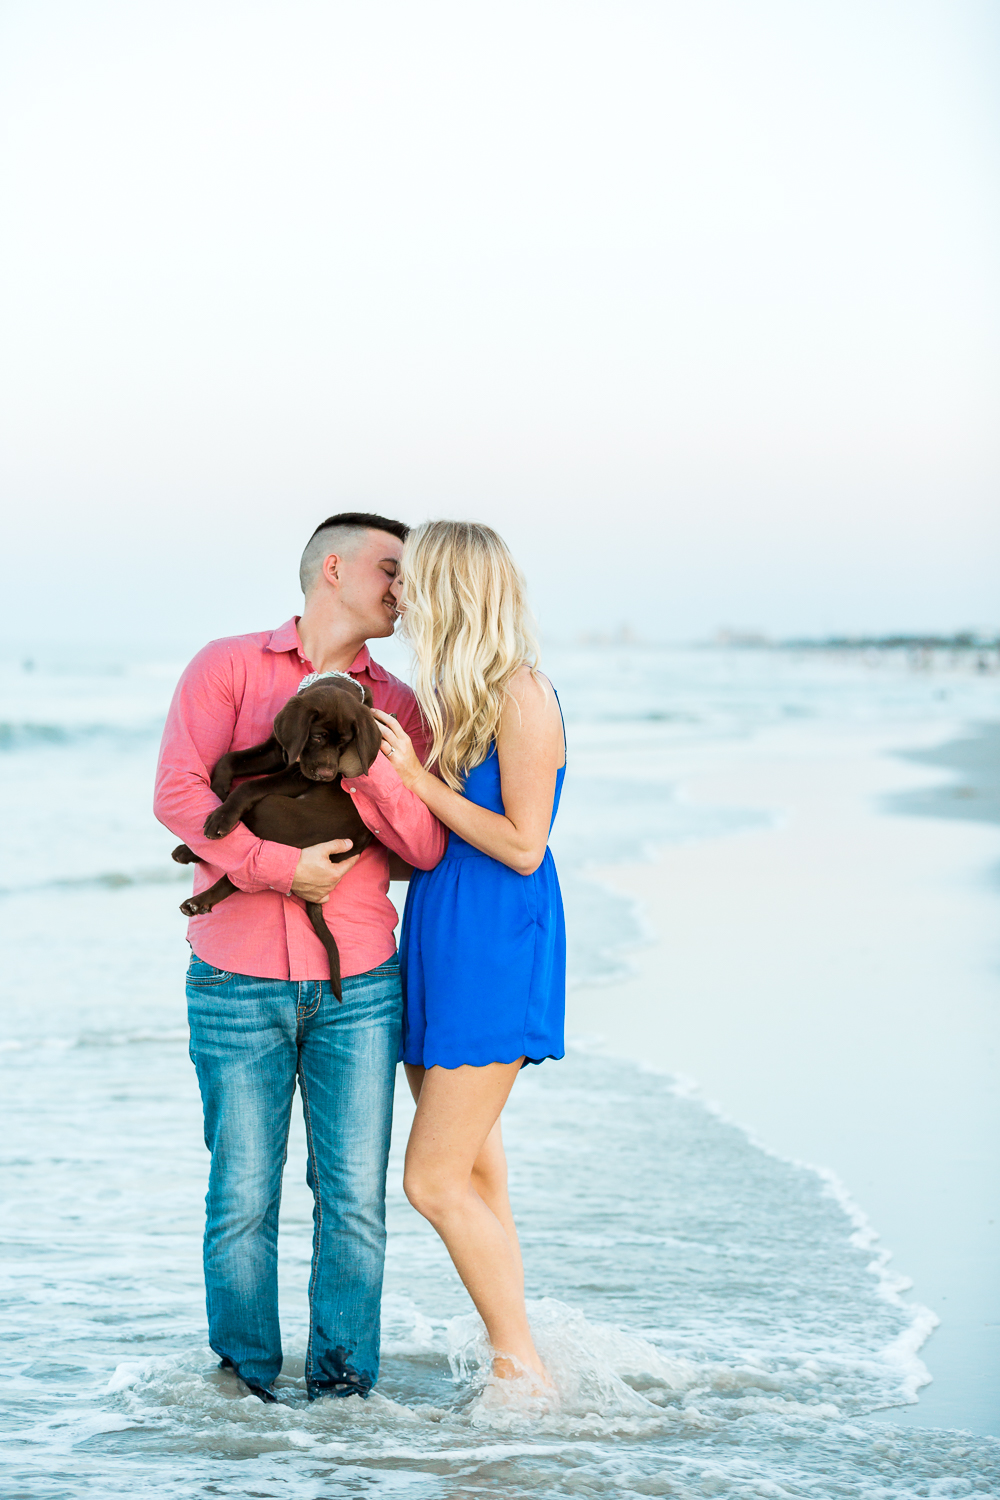 copule kissing with a dog at the beach.jpg